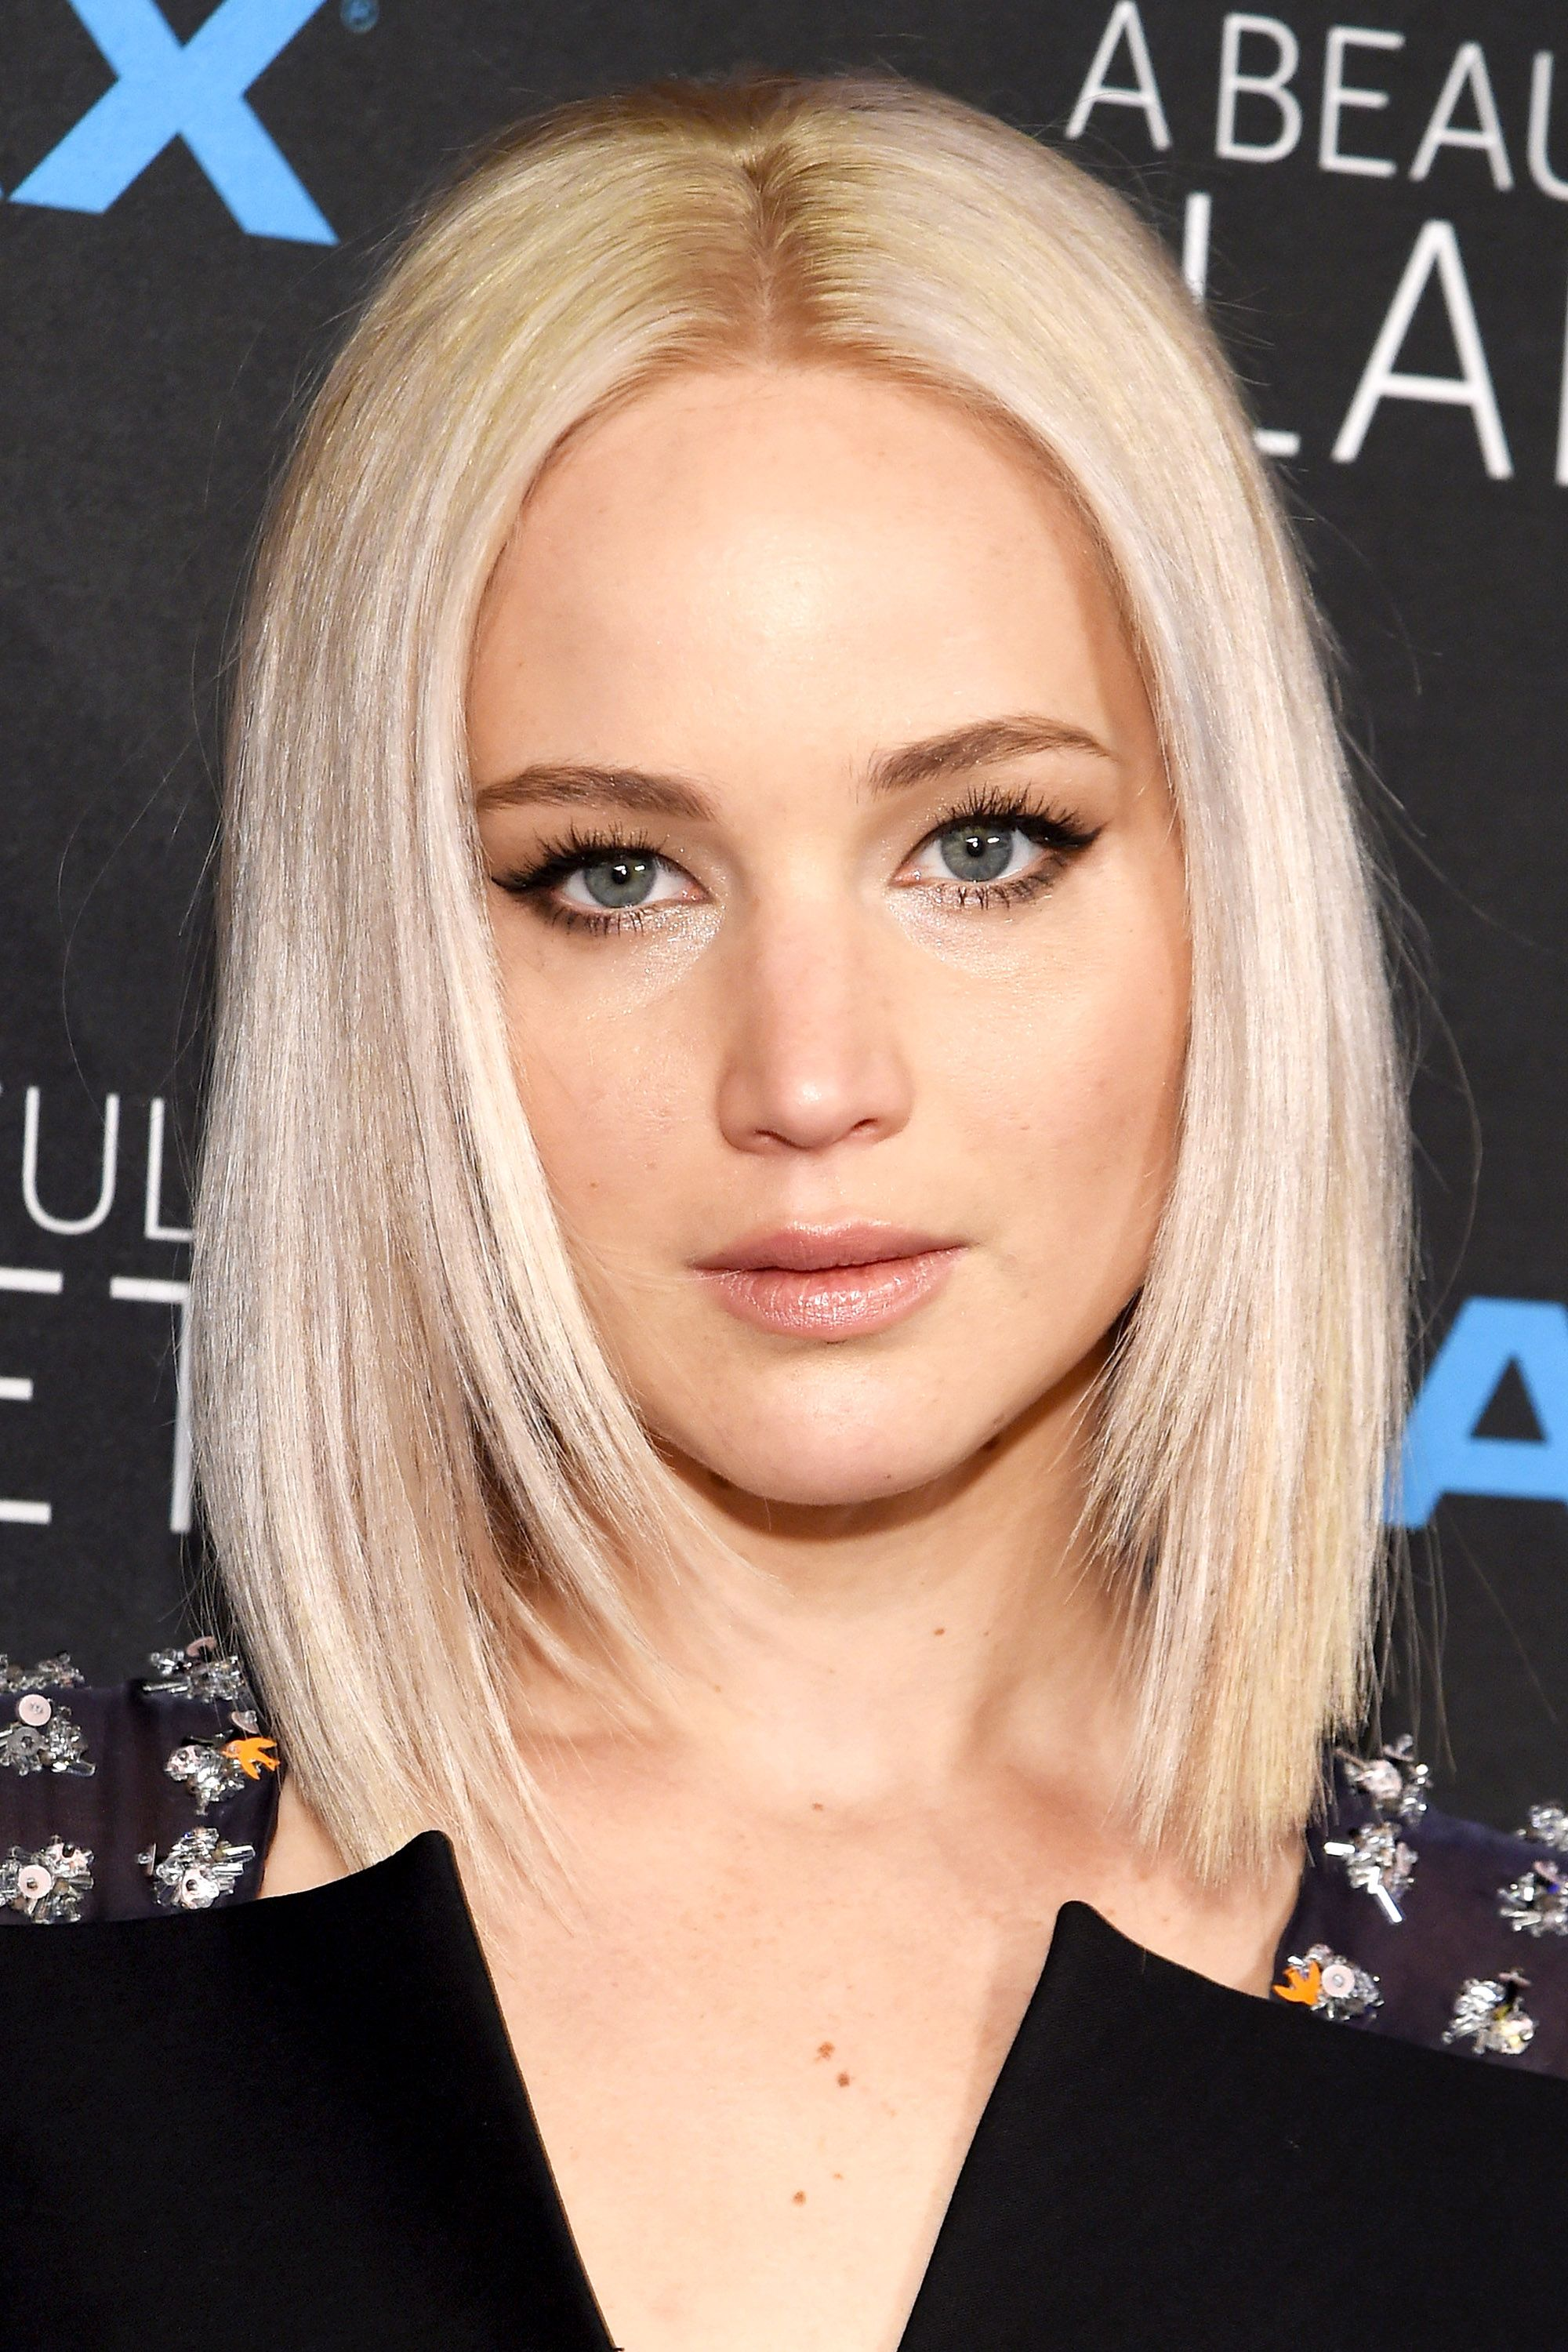 44 short hairstyles to try now | hair do's | pinterest | jennifer